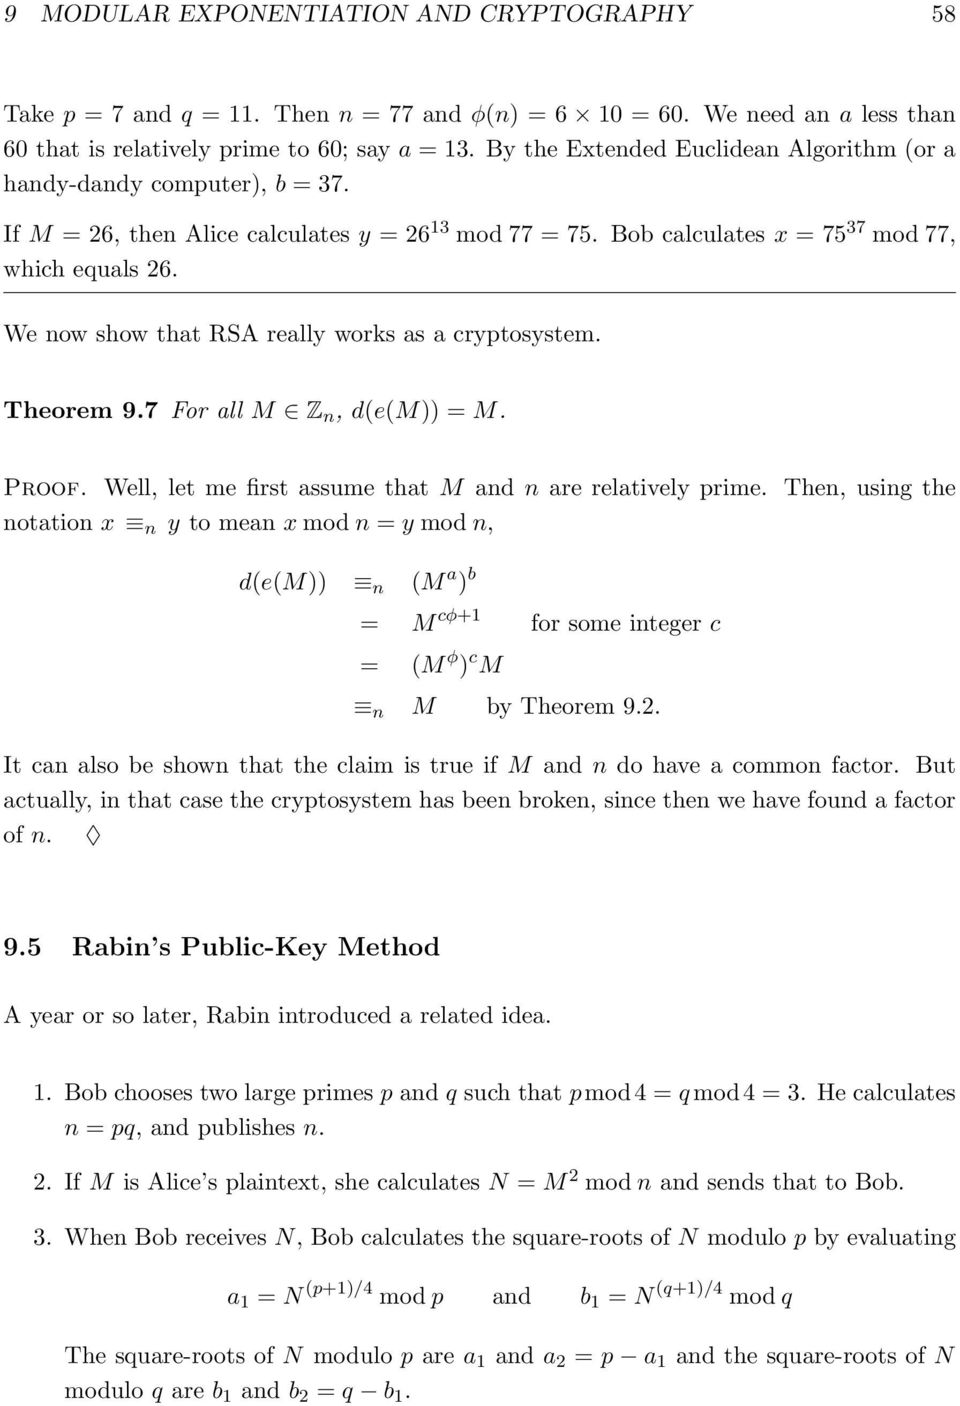 We now show that RSA really works as a cryptosystem. Theorem 9.7 For all M Z n, d(e(m)) = M. Proof. Well, let me first assume that M and n are relatively prime.